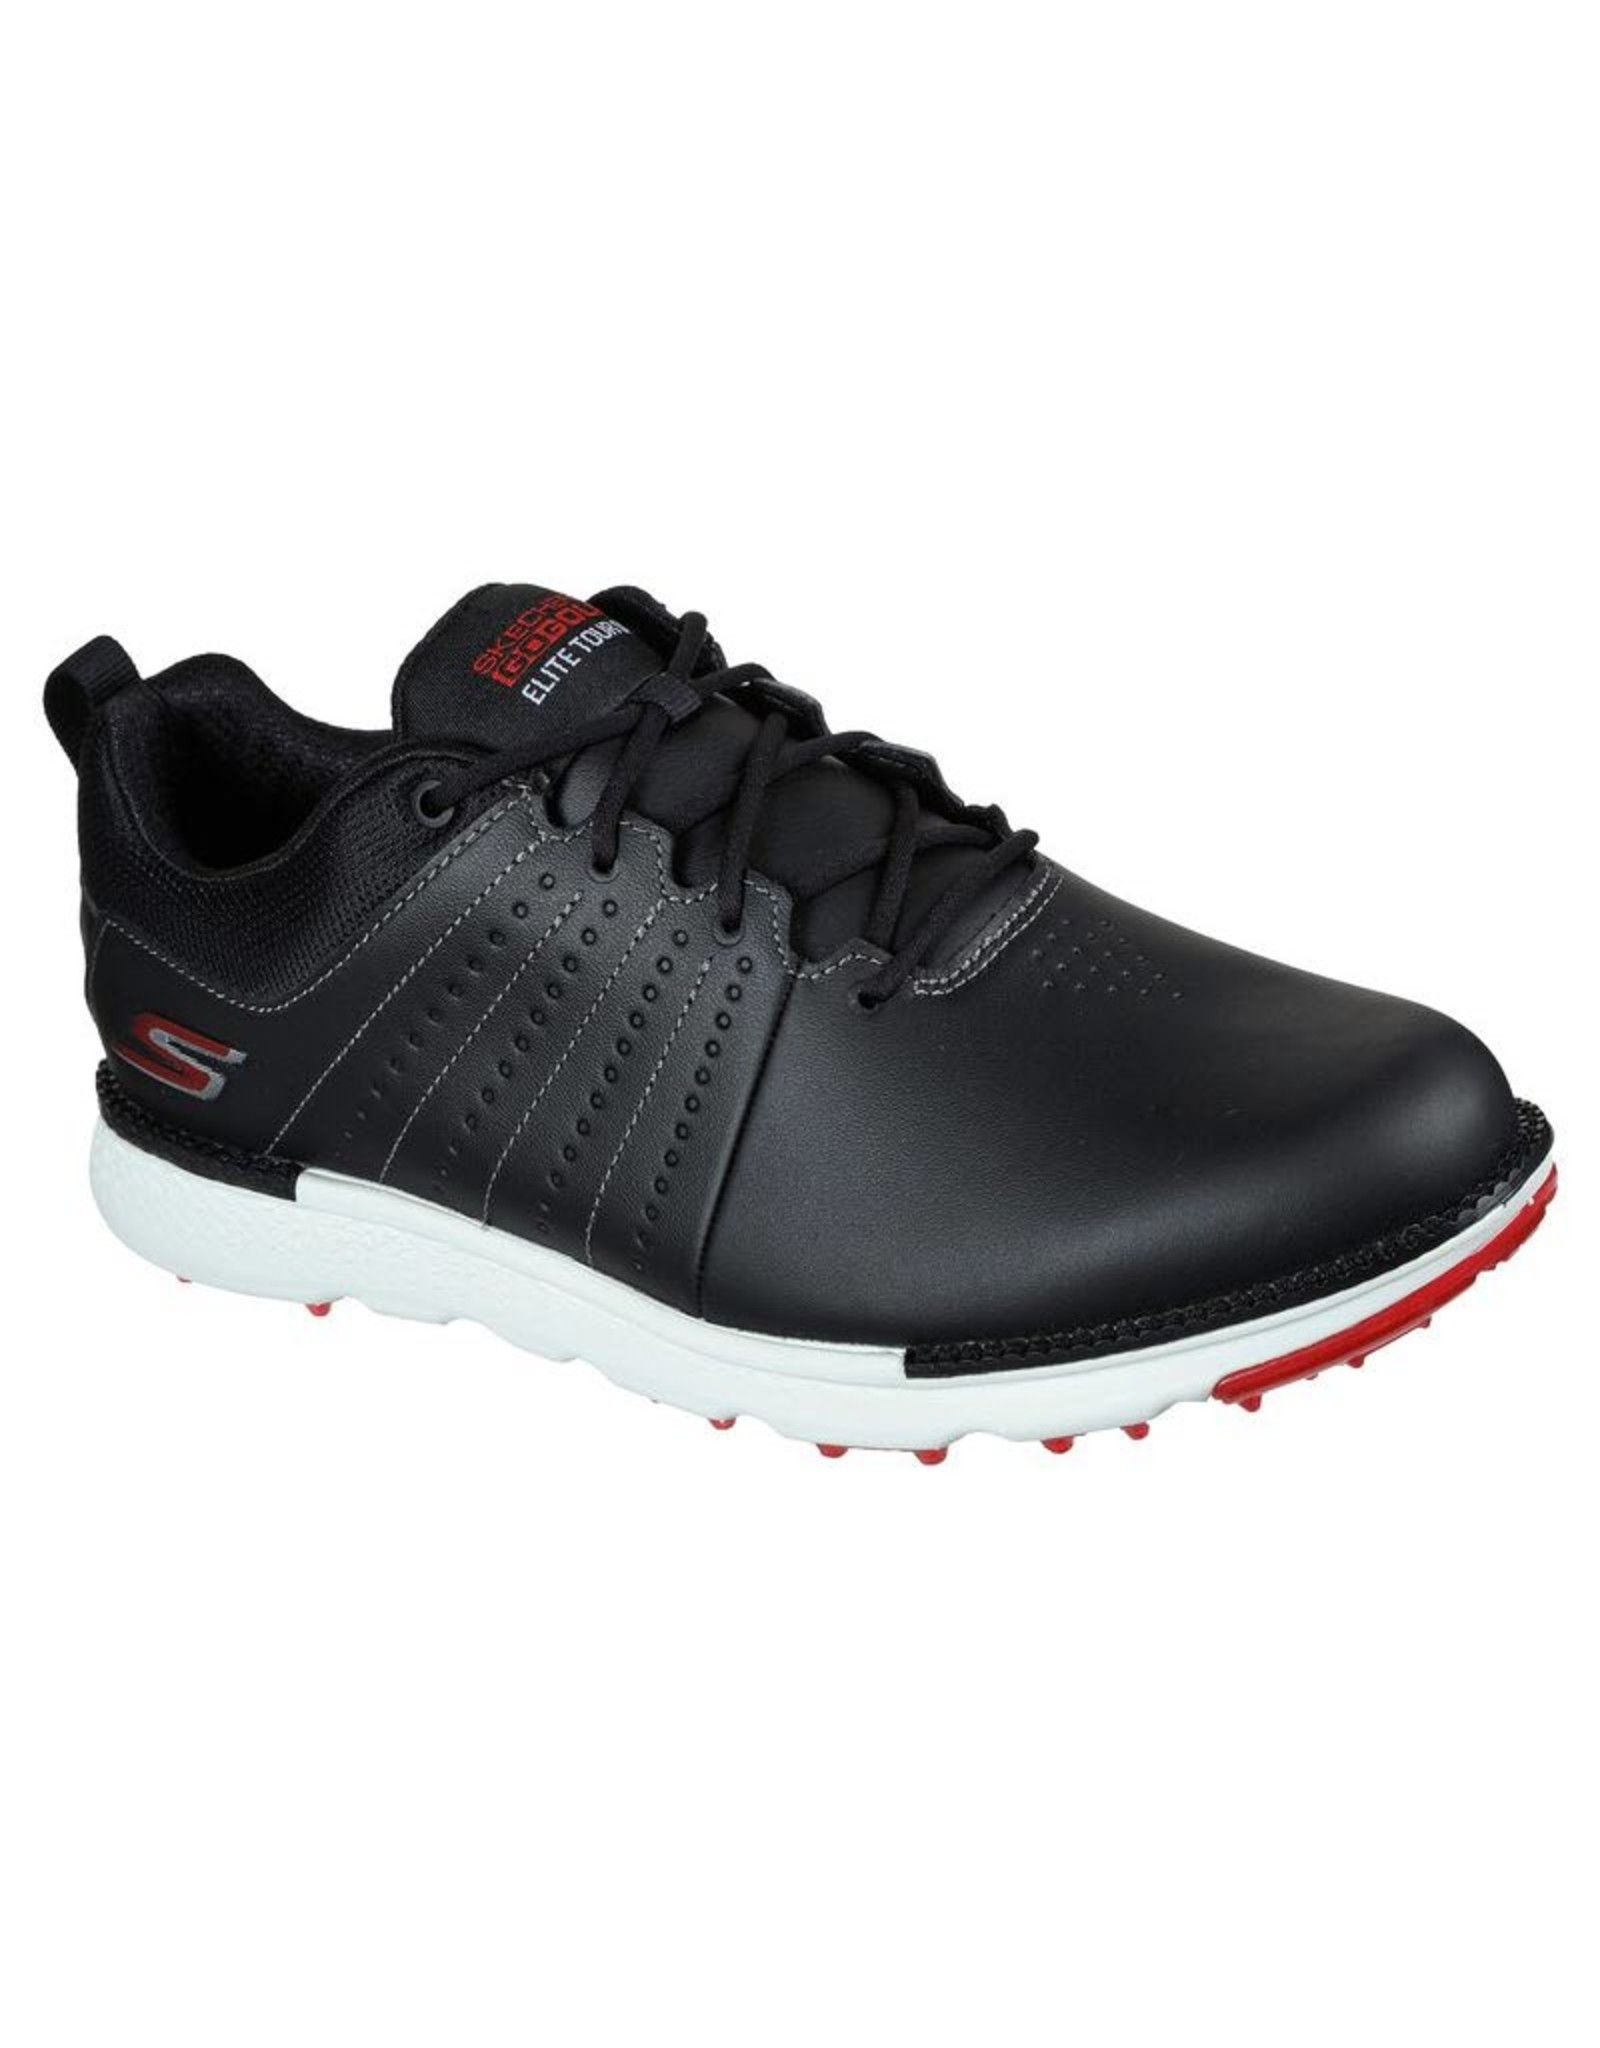 SKECHERS SKECHERS 2021 ELITE-TOUR SL 214004